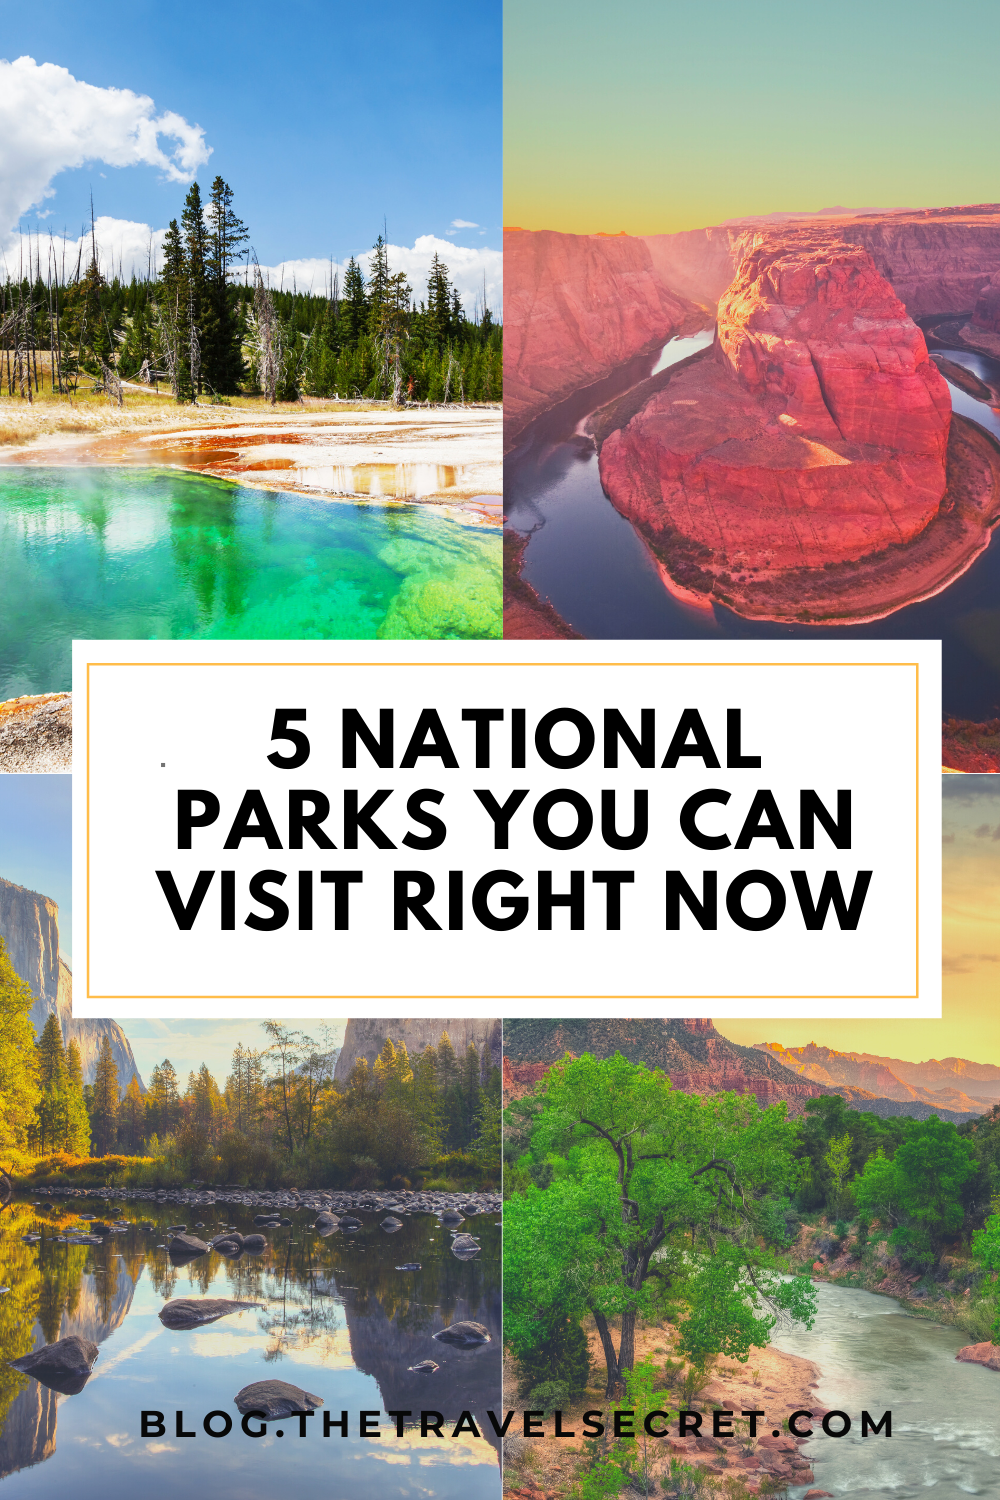 5 National Parks you can visit right now